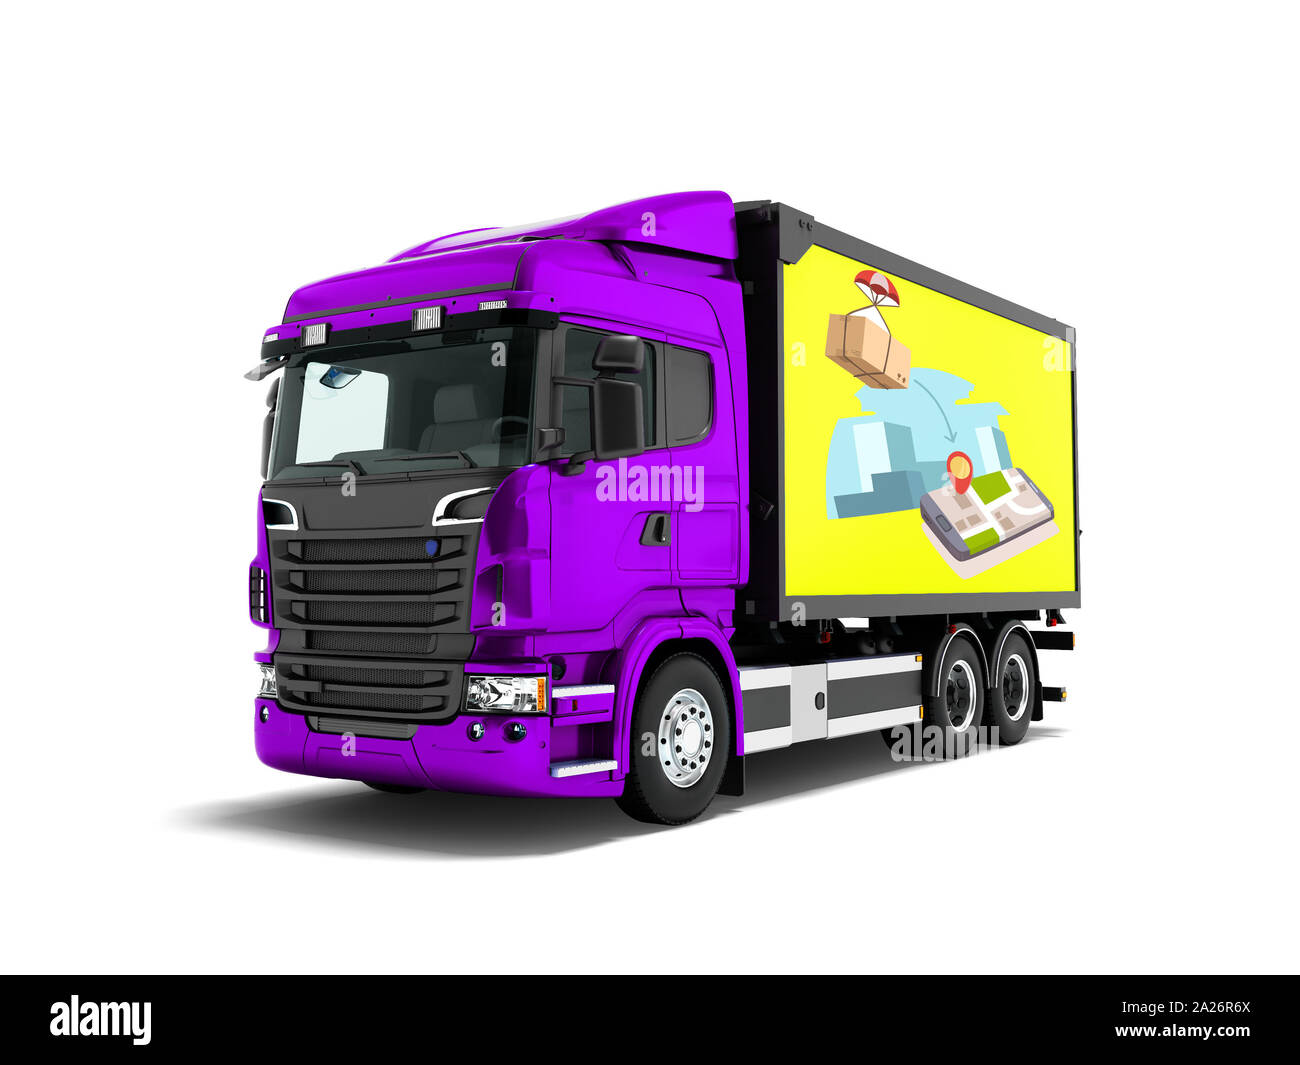 Modern purple truck with yellow trailer for mail transport 3d render on white background with shadow Stock Photo